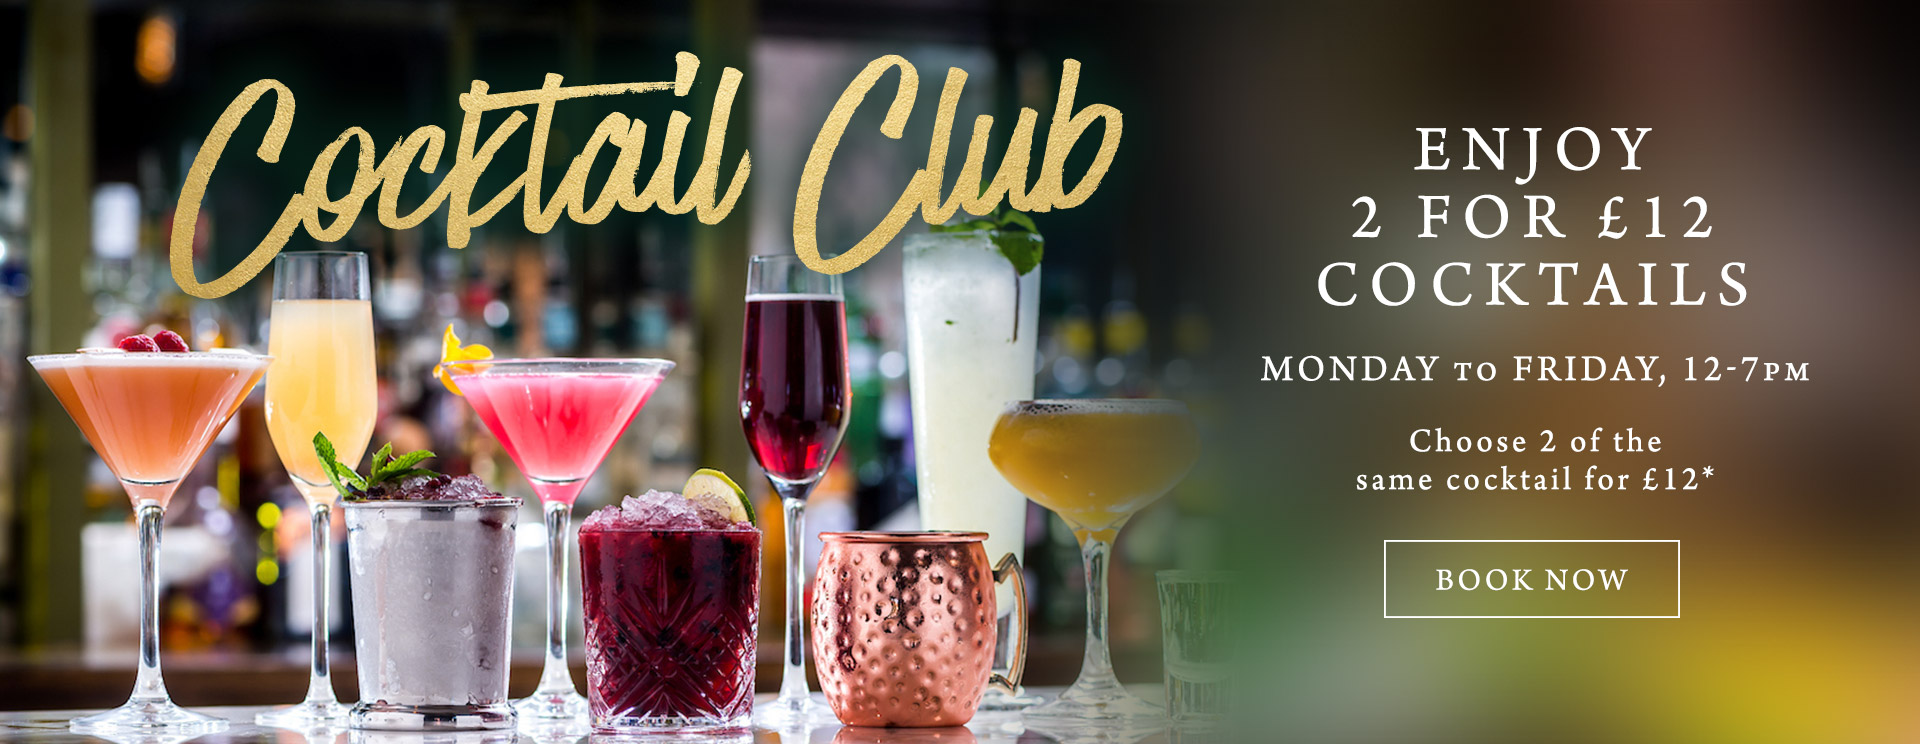 2 for £12 cocktails at The Queen & Castle